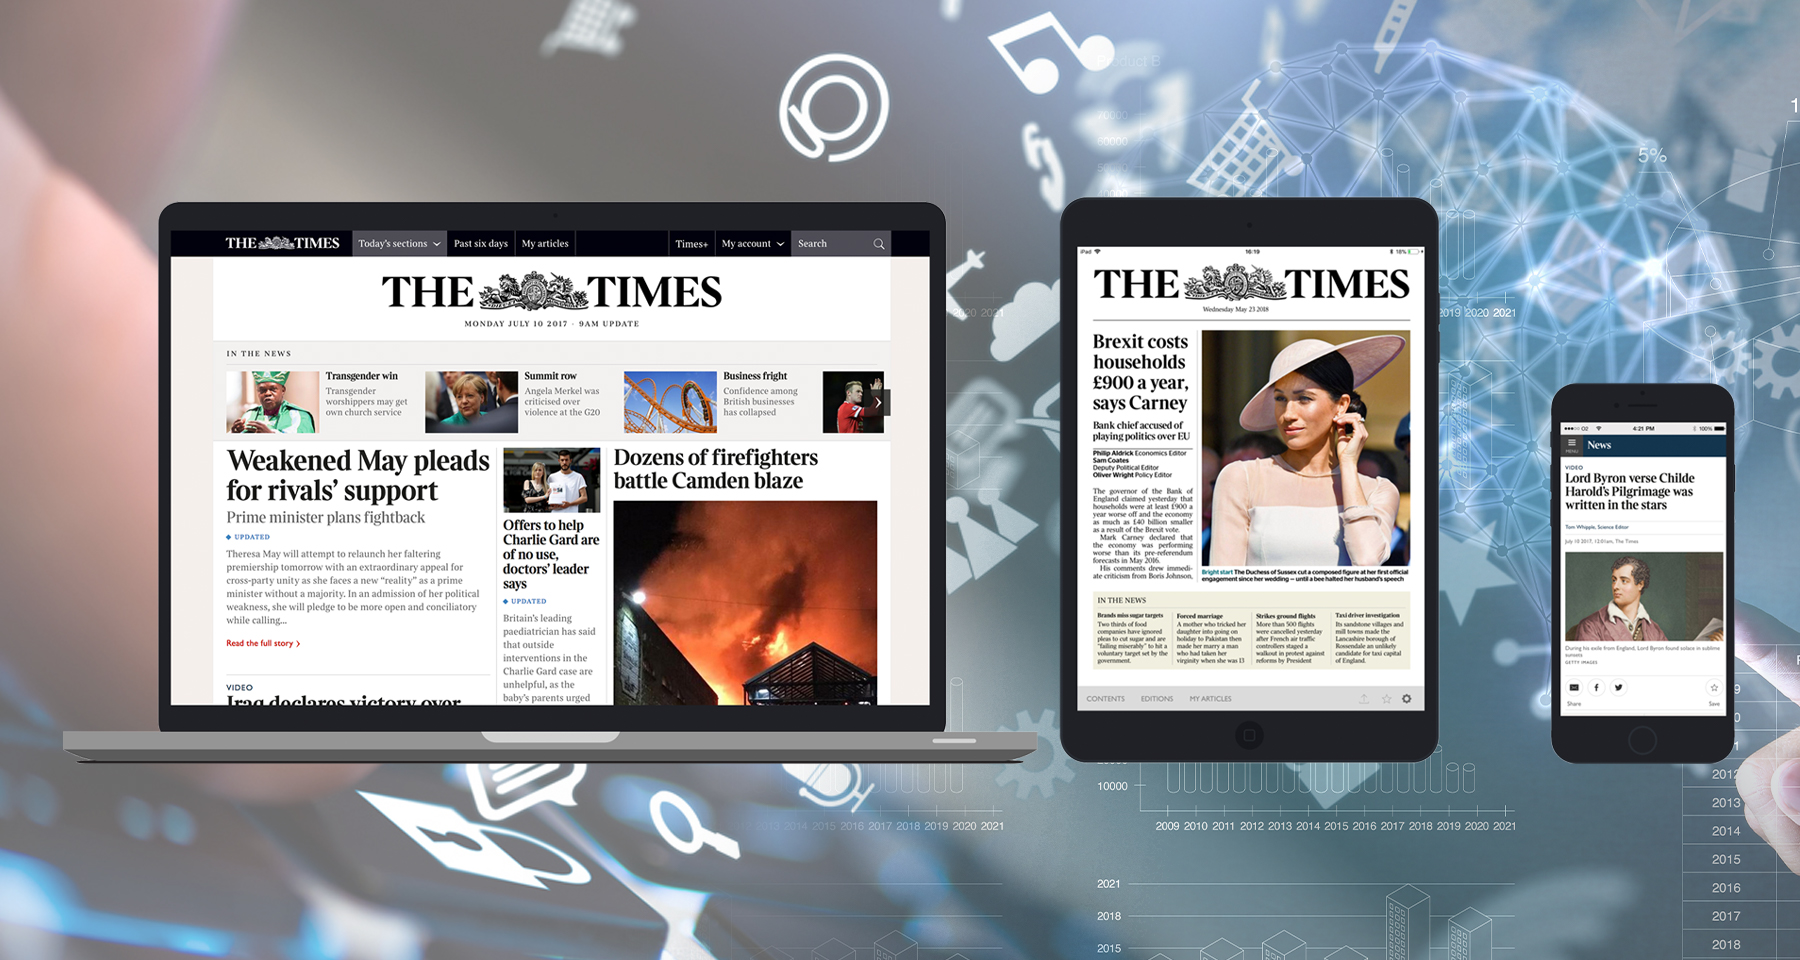 News UK shares its ongoing debate between editorial and advertorial